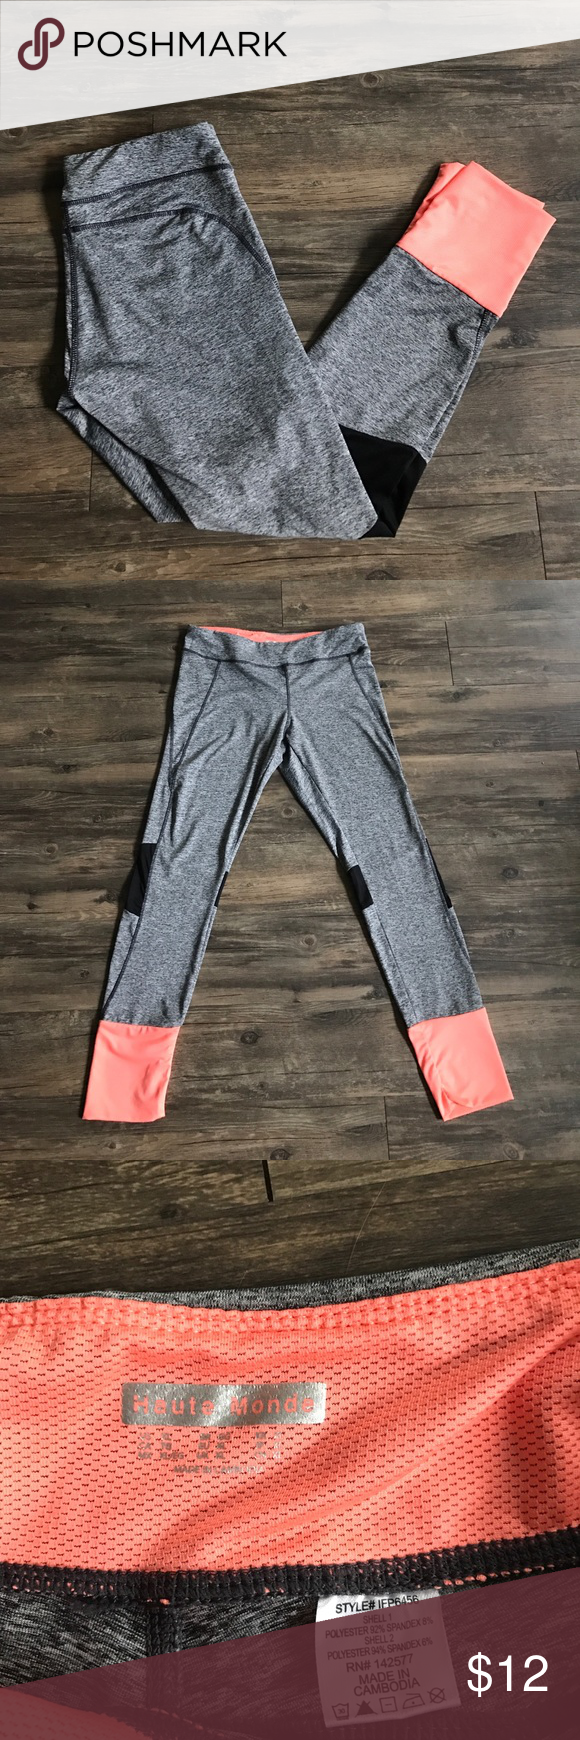 "Activewear Florescent Pants (long) NEW Without tags! Super cute!! Size XL and very soft and stretchy breathable material. Great fluorescent and black accents on the gray material. Perfect for a tall girl they are 31"" inseam! Pants Track Pants & Joggers"